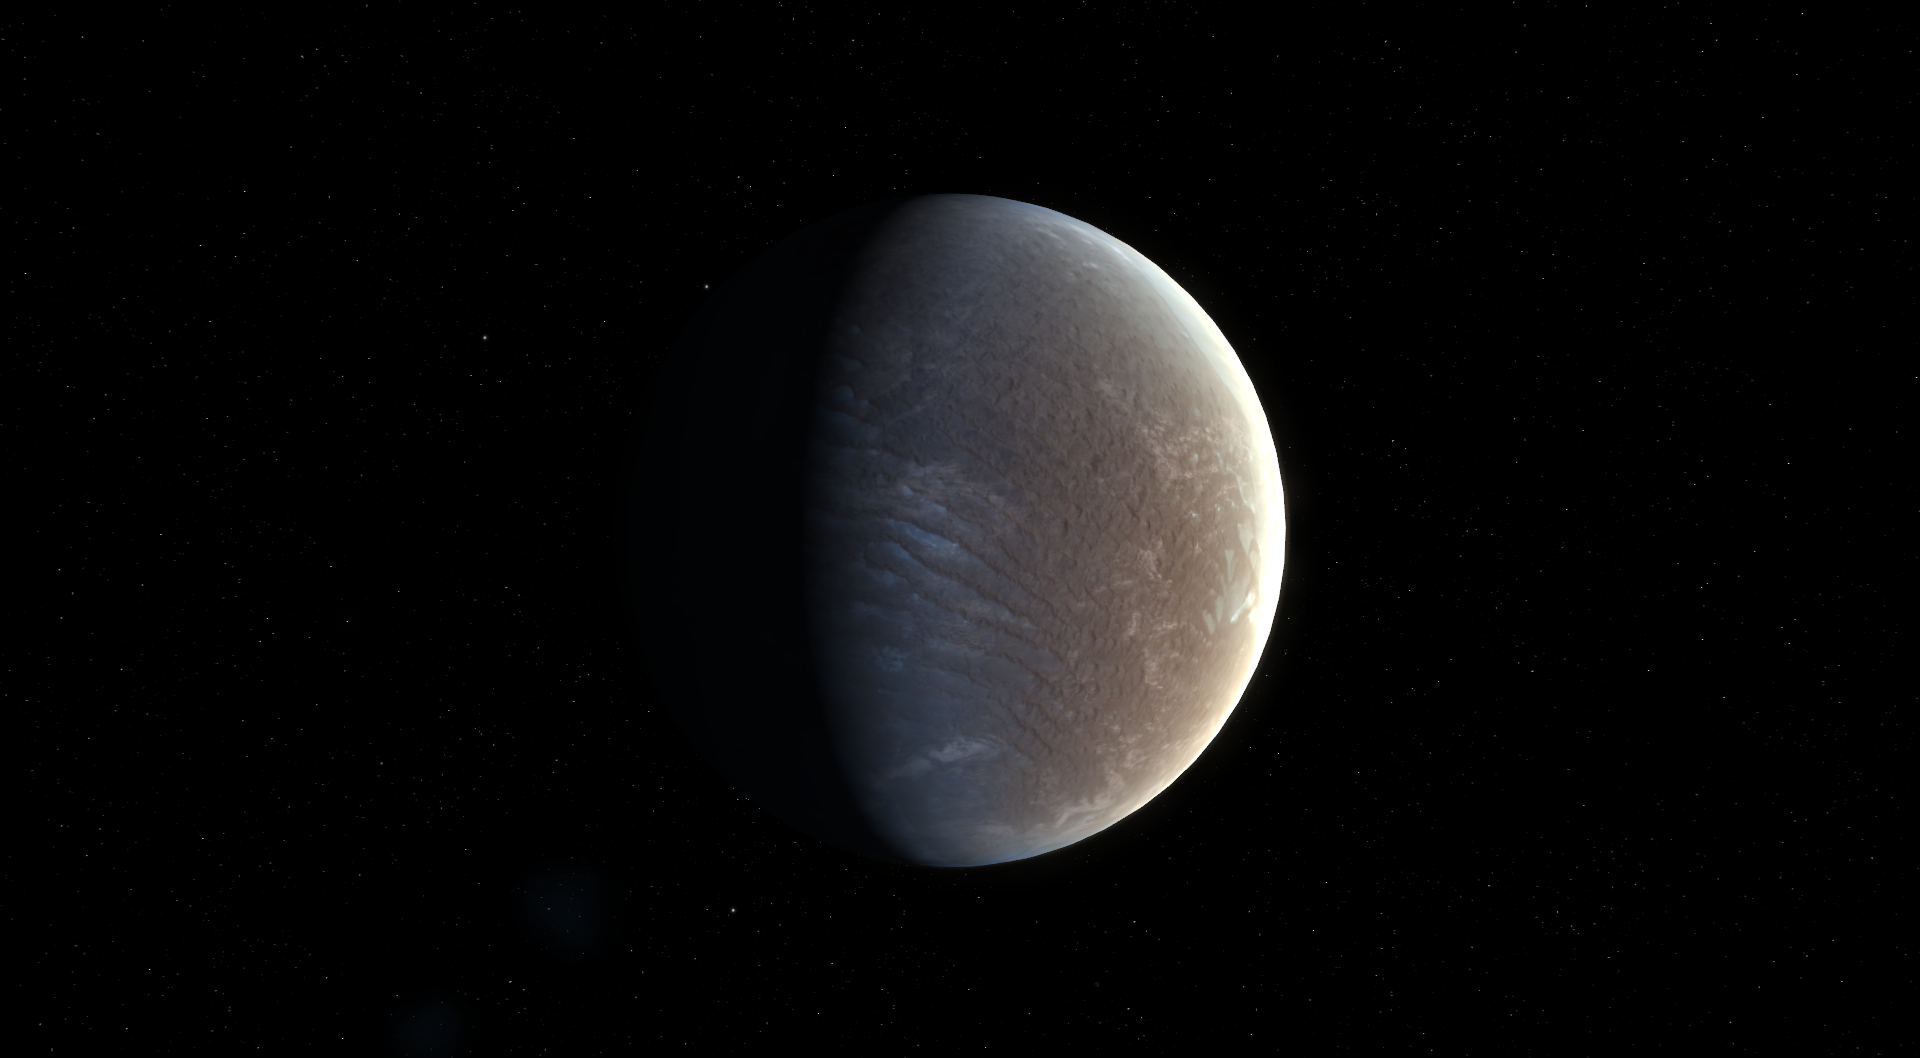 New Barren Planet Texture Image Sins Of The Prophets Mod For Sins